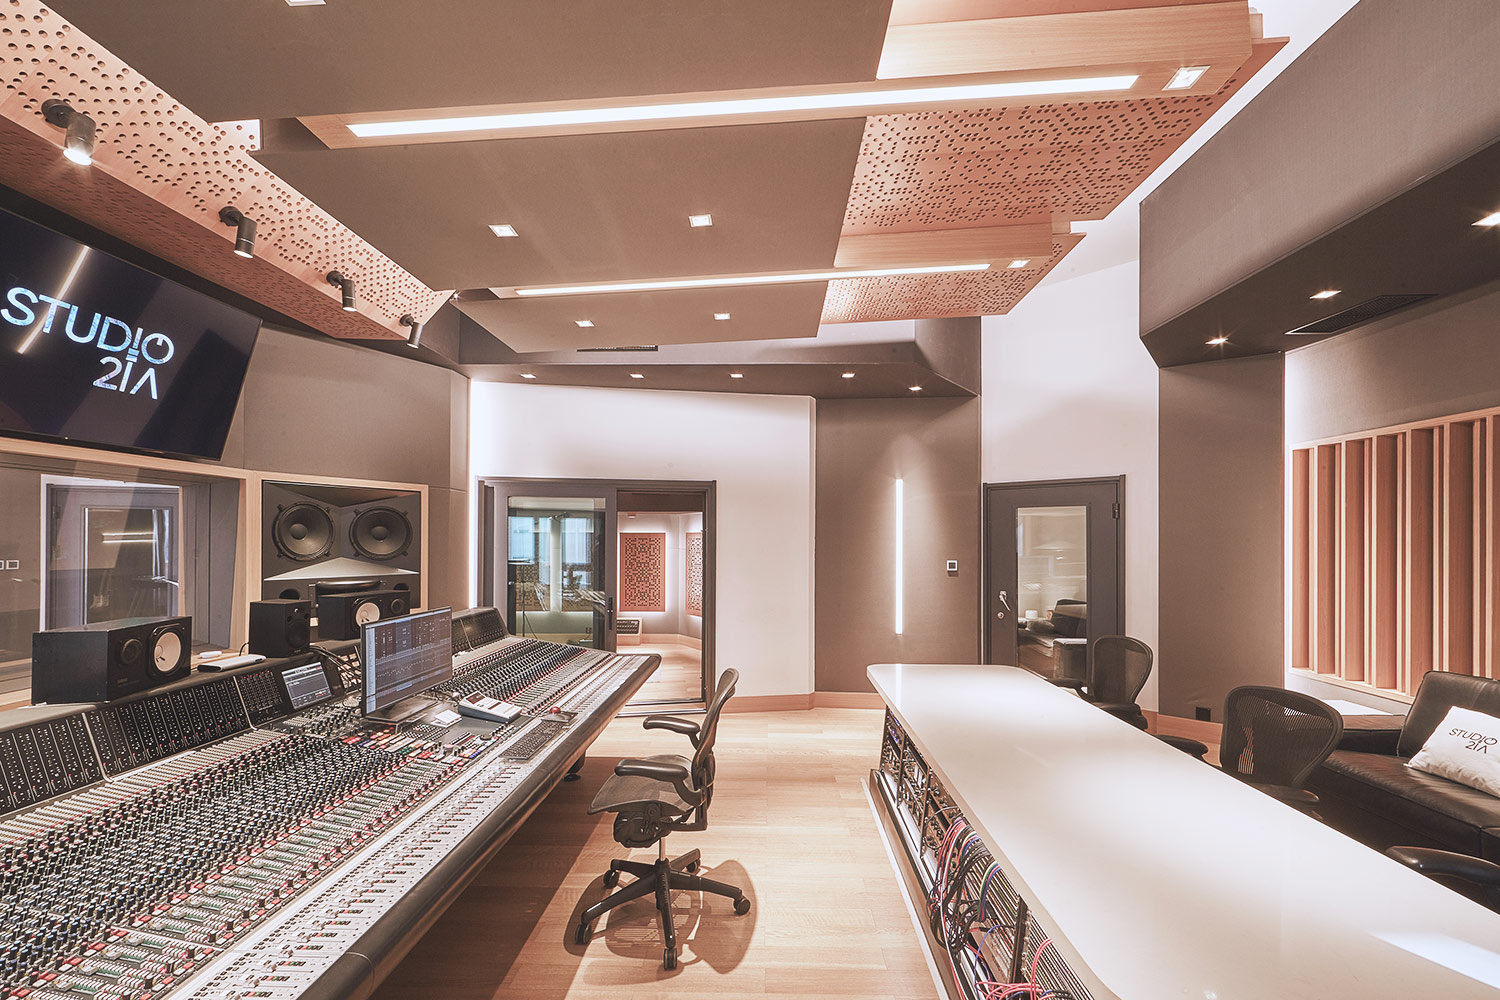 Intrigued by WSDG's reputation in designing the best recording studios in the world, multi-talented recording and mixing engineer TC Zhou started a deep collaboration with our global team for his brand-new Studio 21A facility in Beijing, China. Control Room A Side 2.